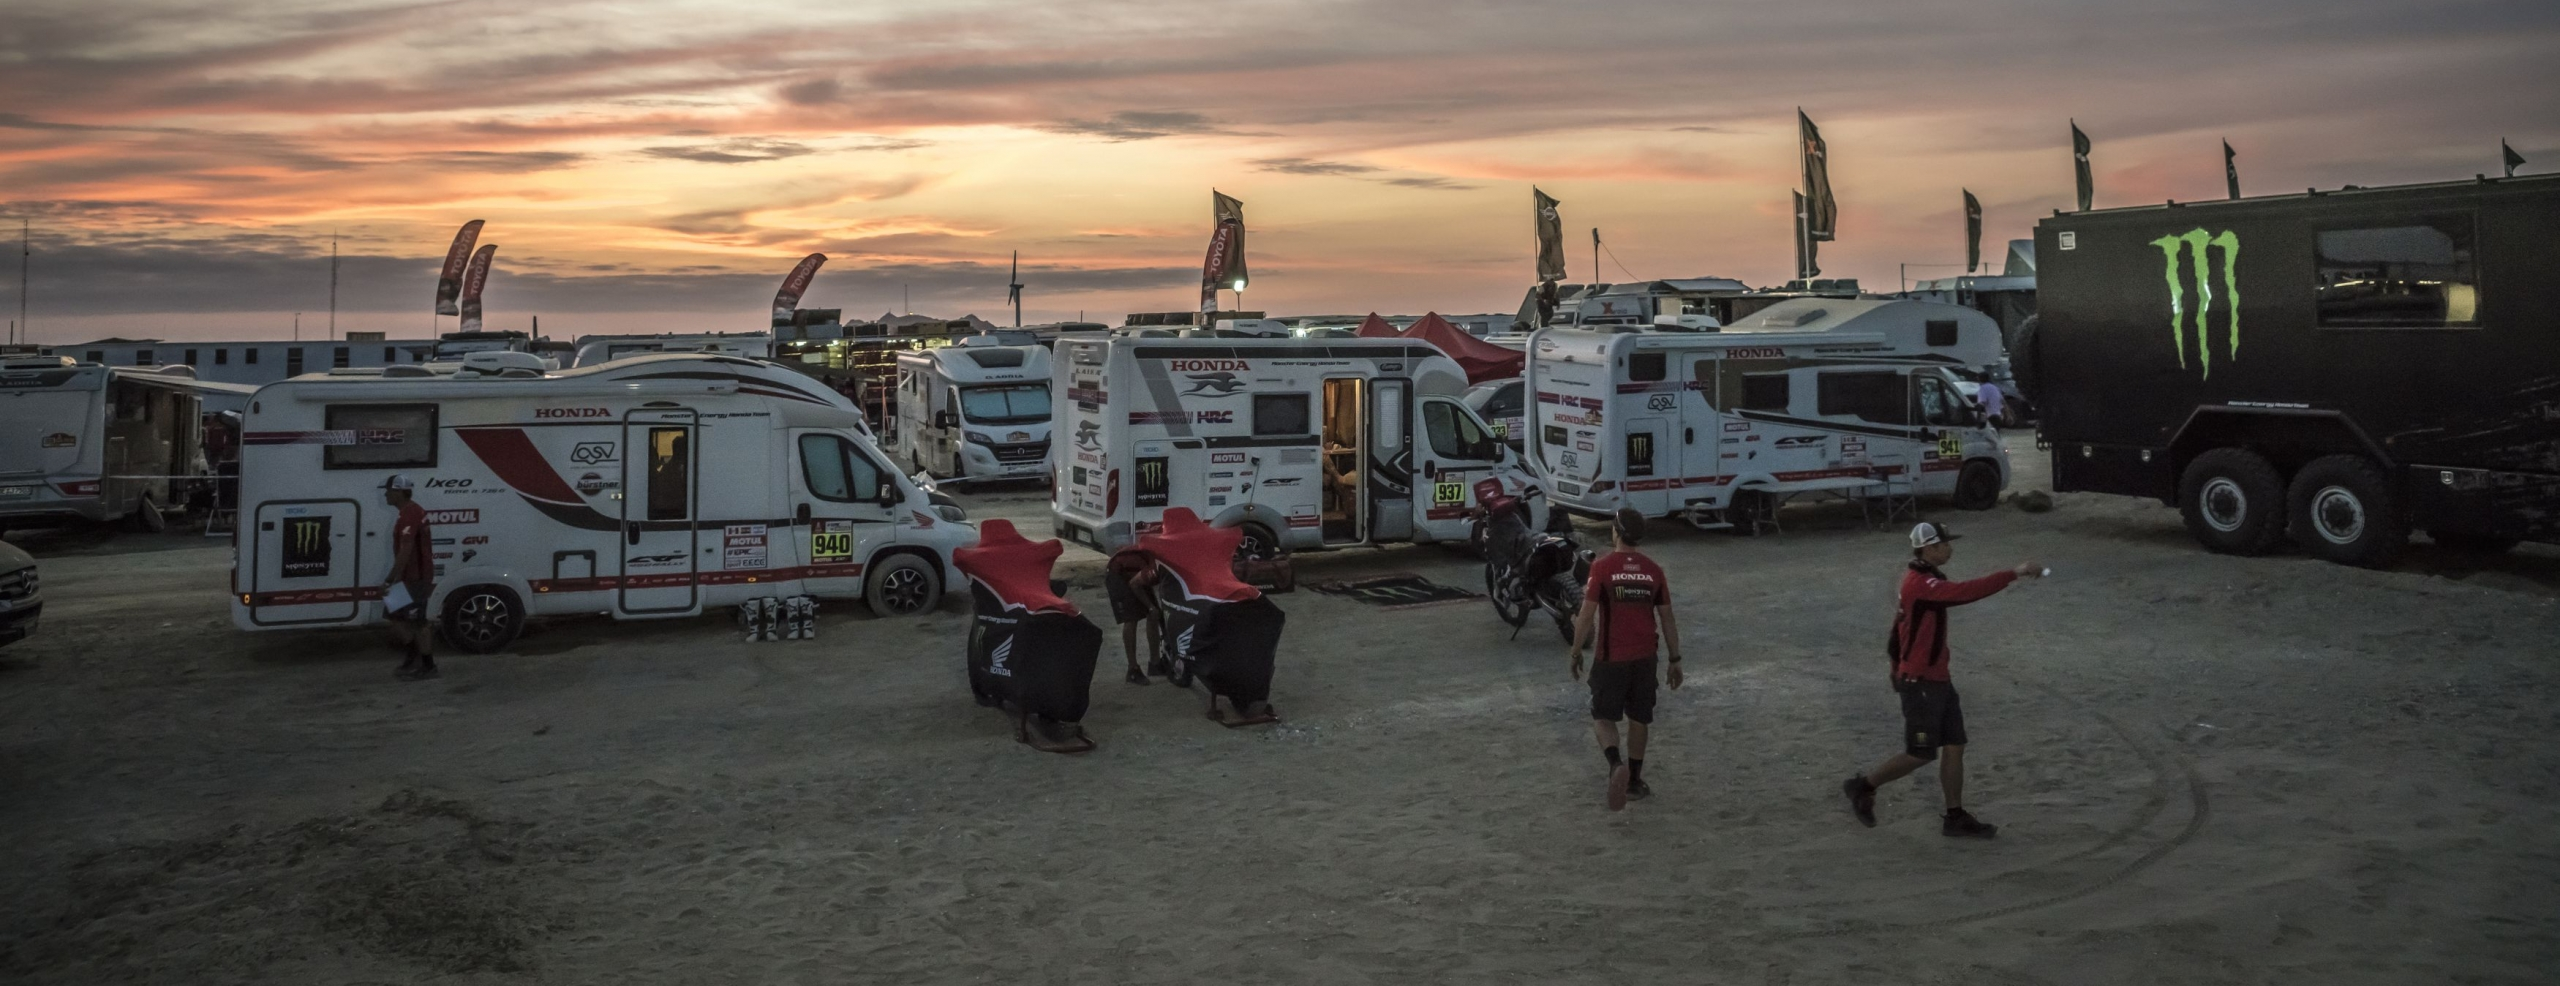 Stage 9 suspended. Monster Energy Honda Team prepares for the decisive phase of the Dakar